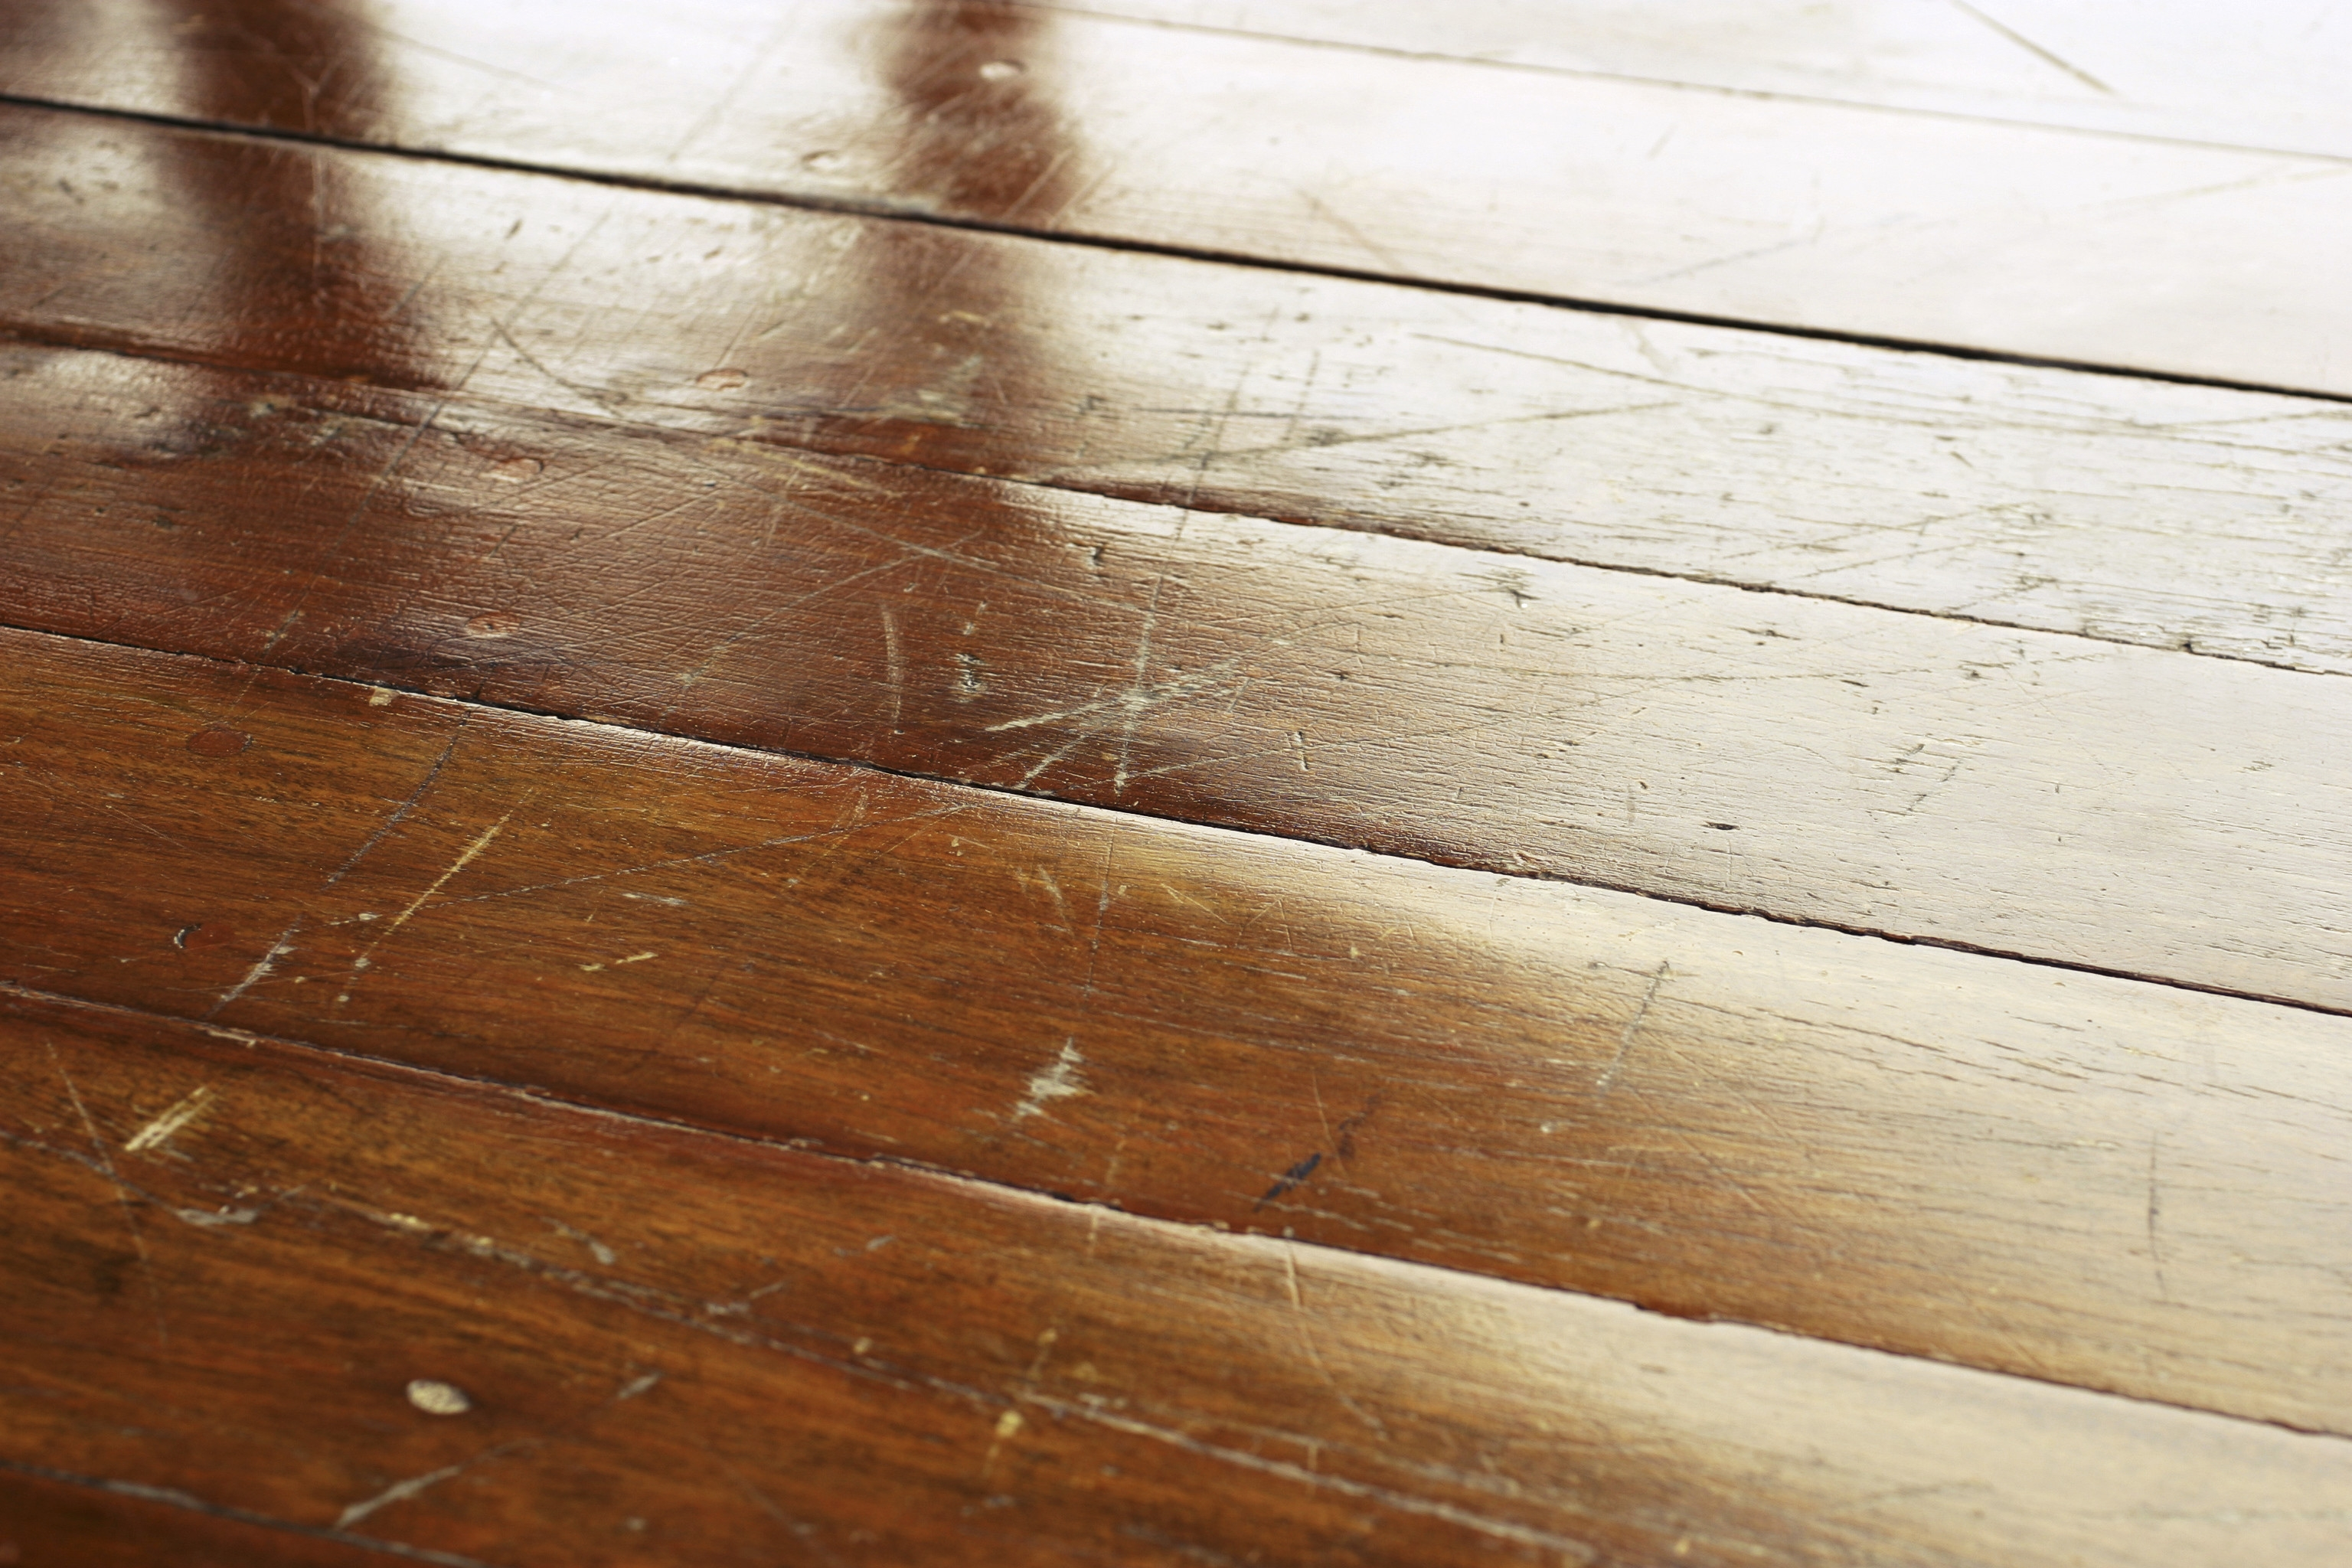 White Scuff Marks On Wood Floors